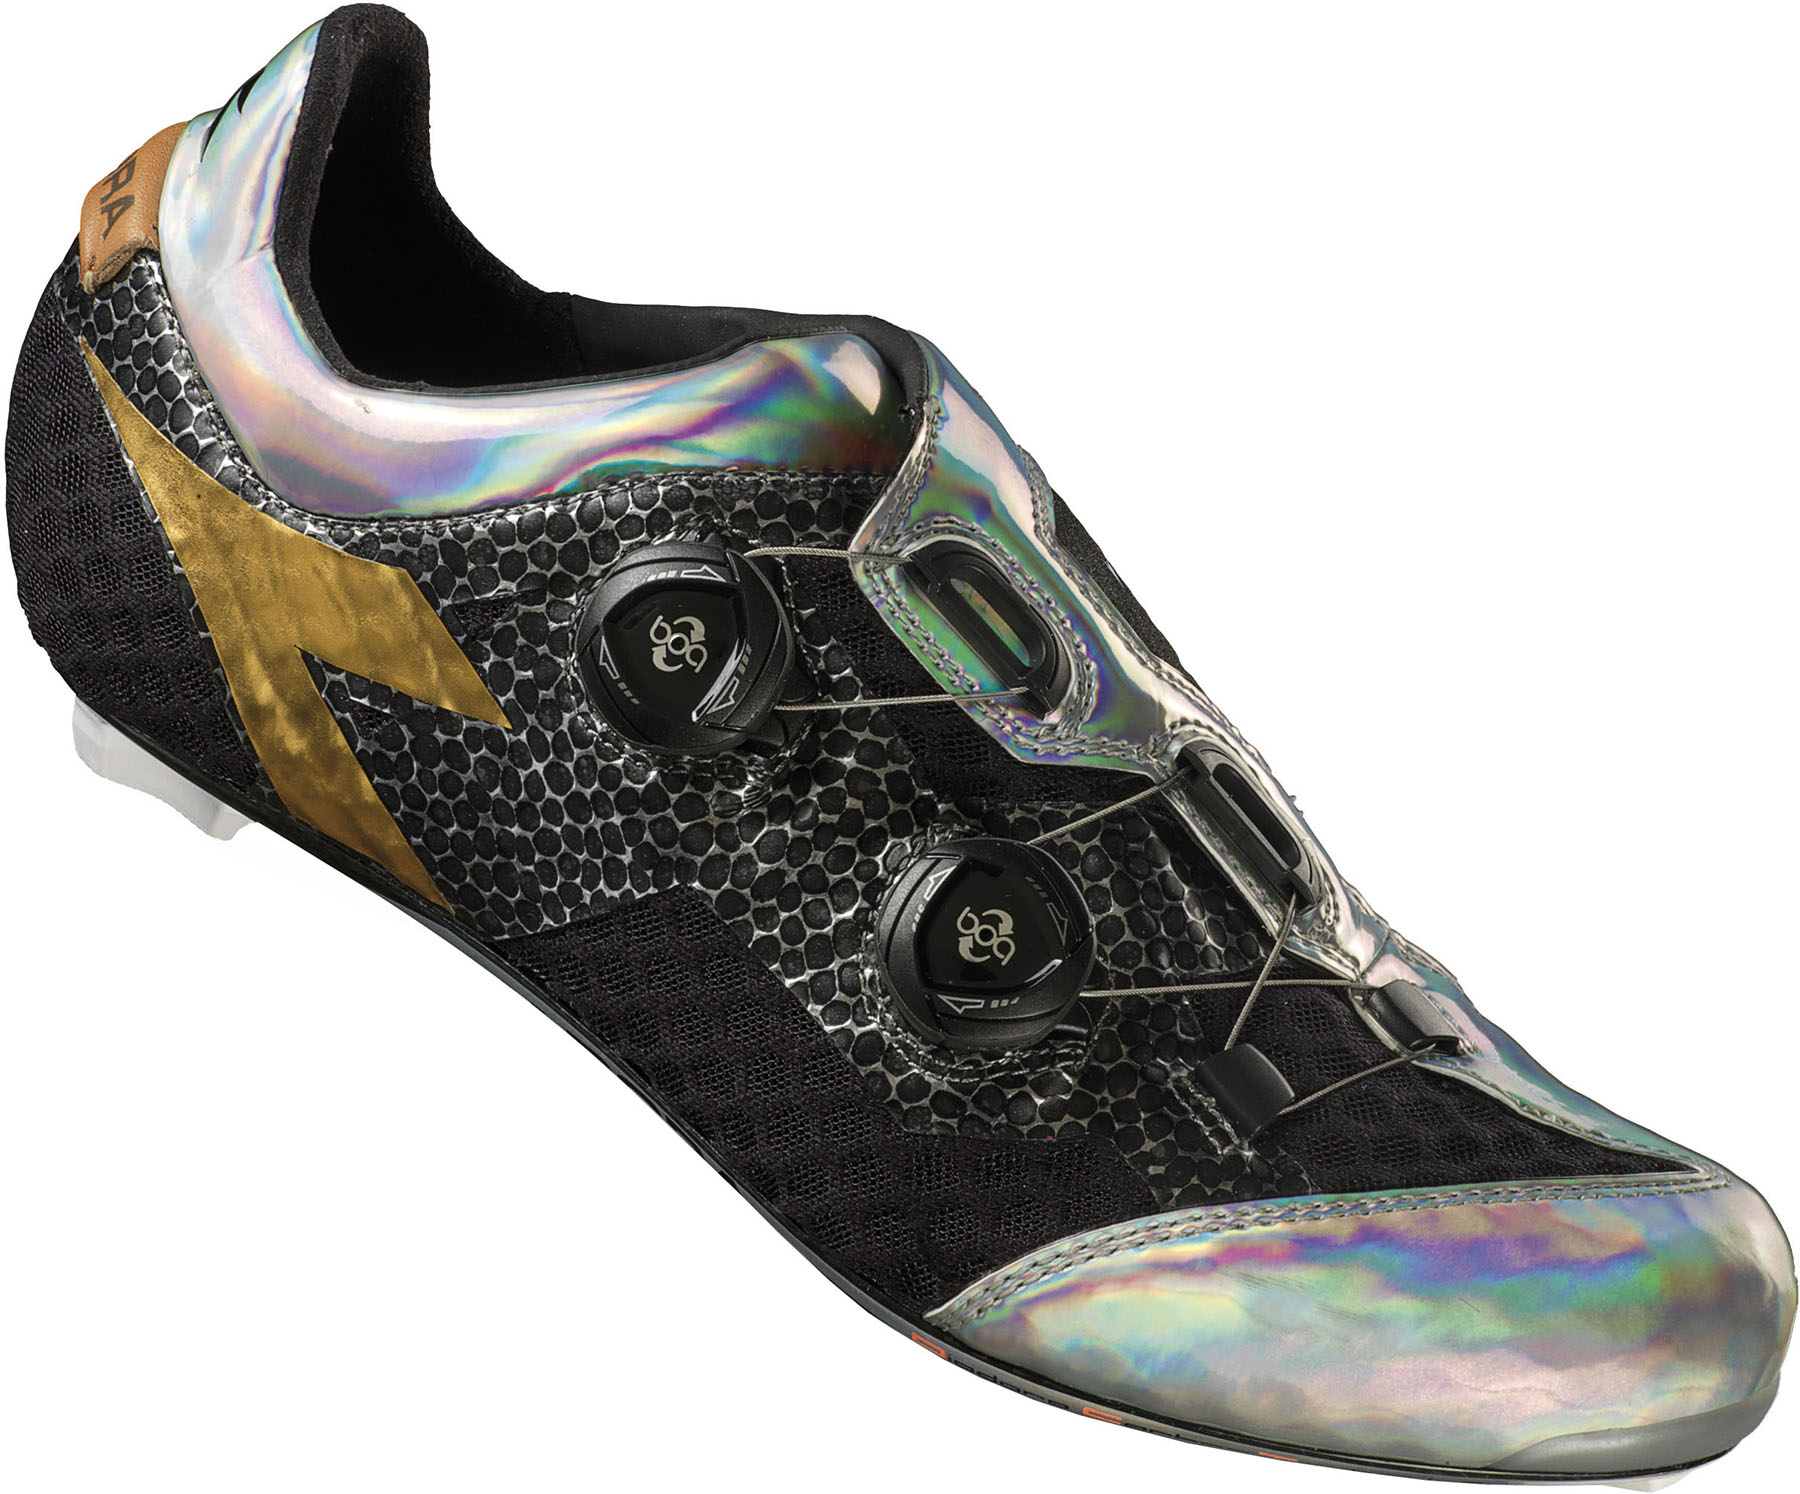 Diadora D-Stellar SPD-SL Road Shoes | Shoes and overlays